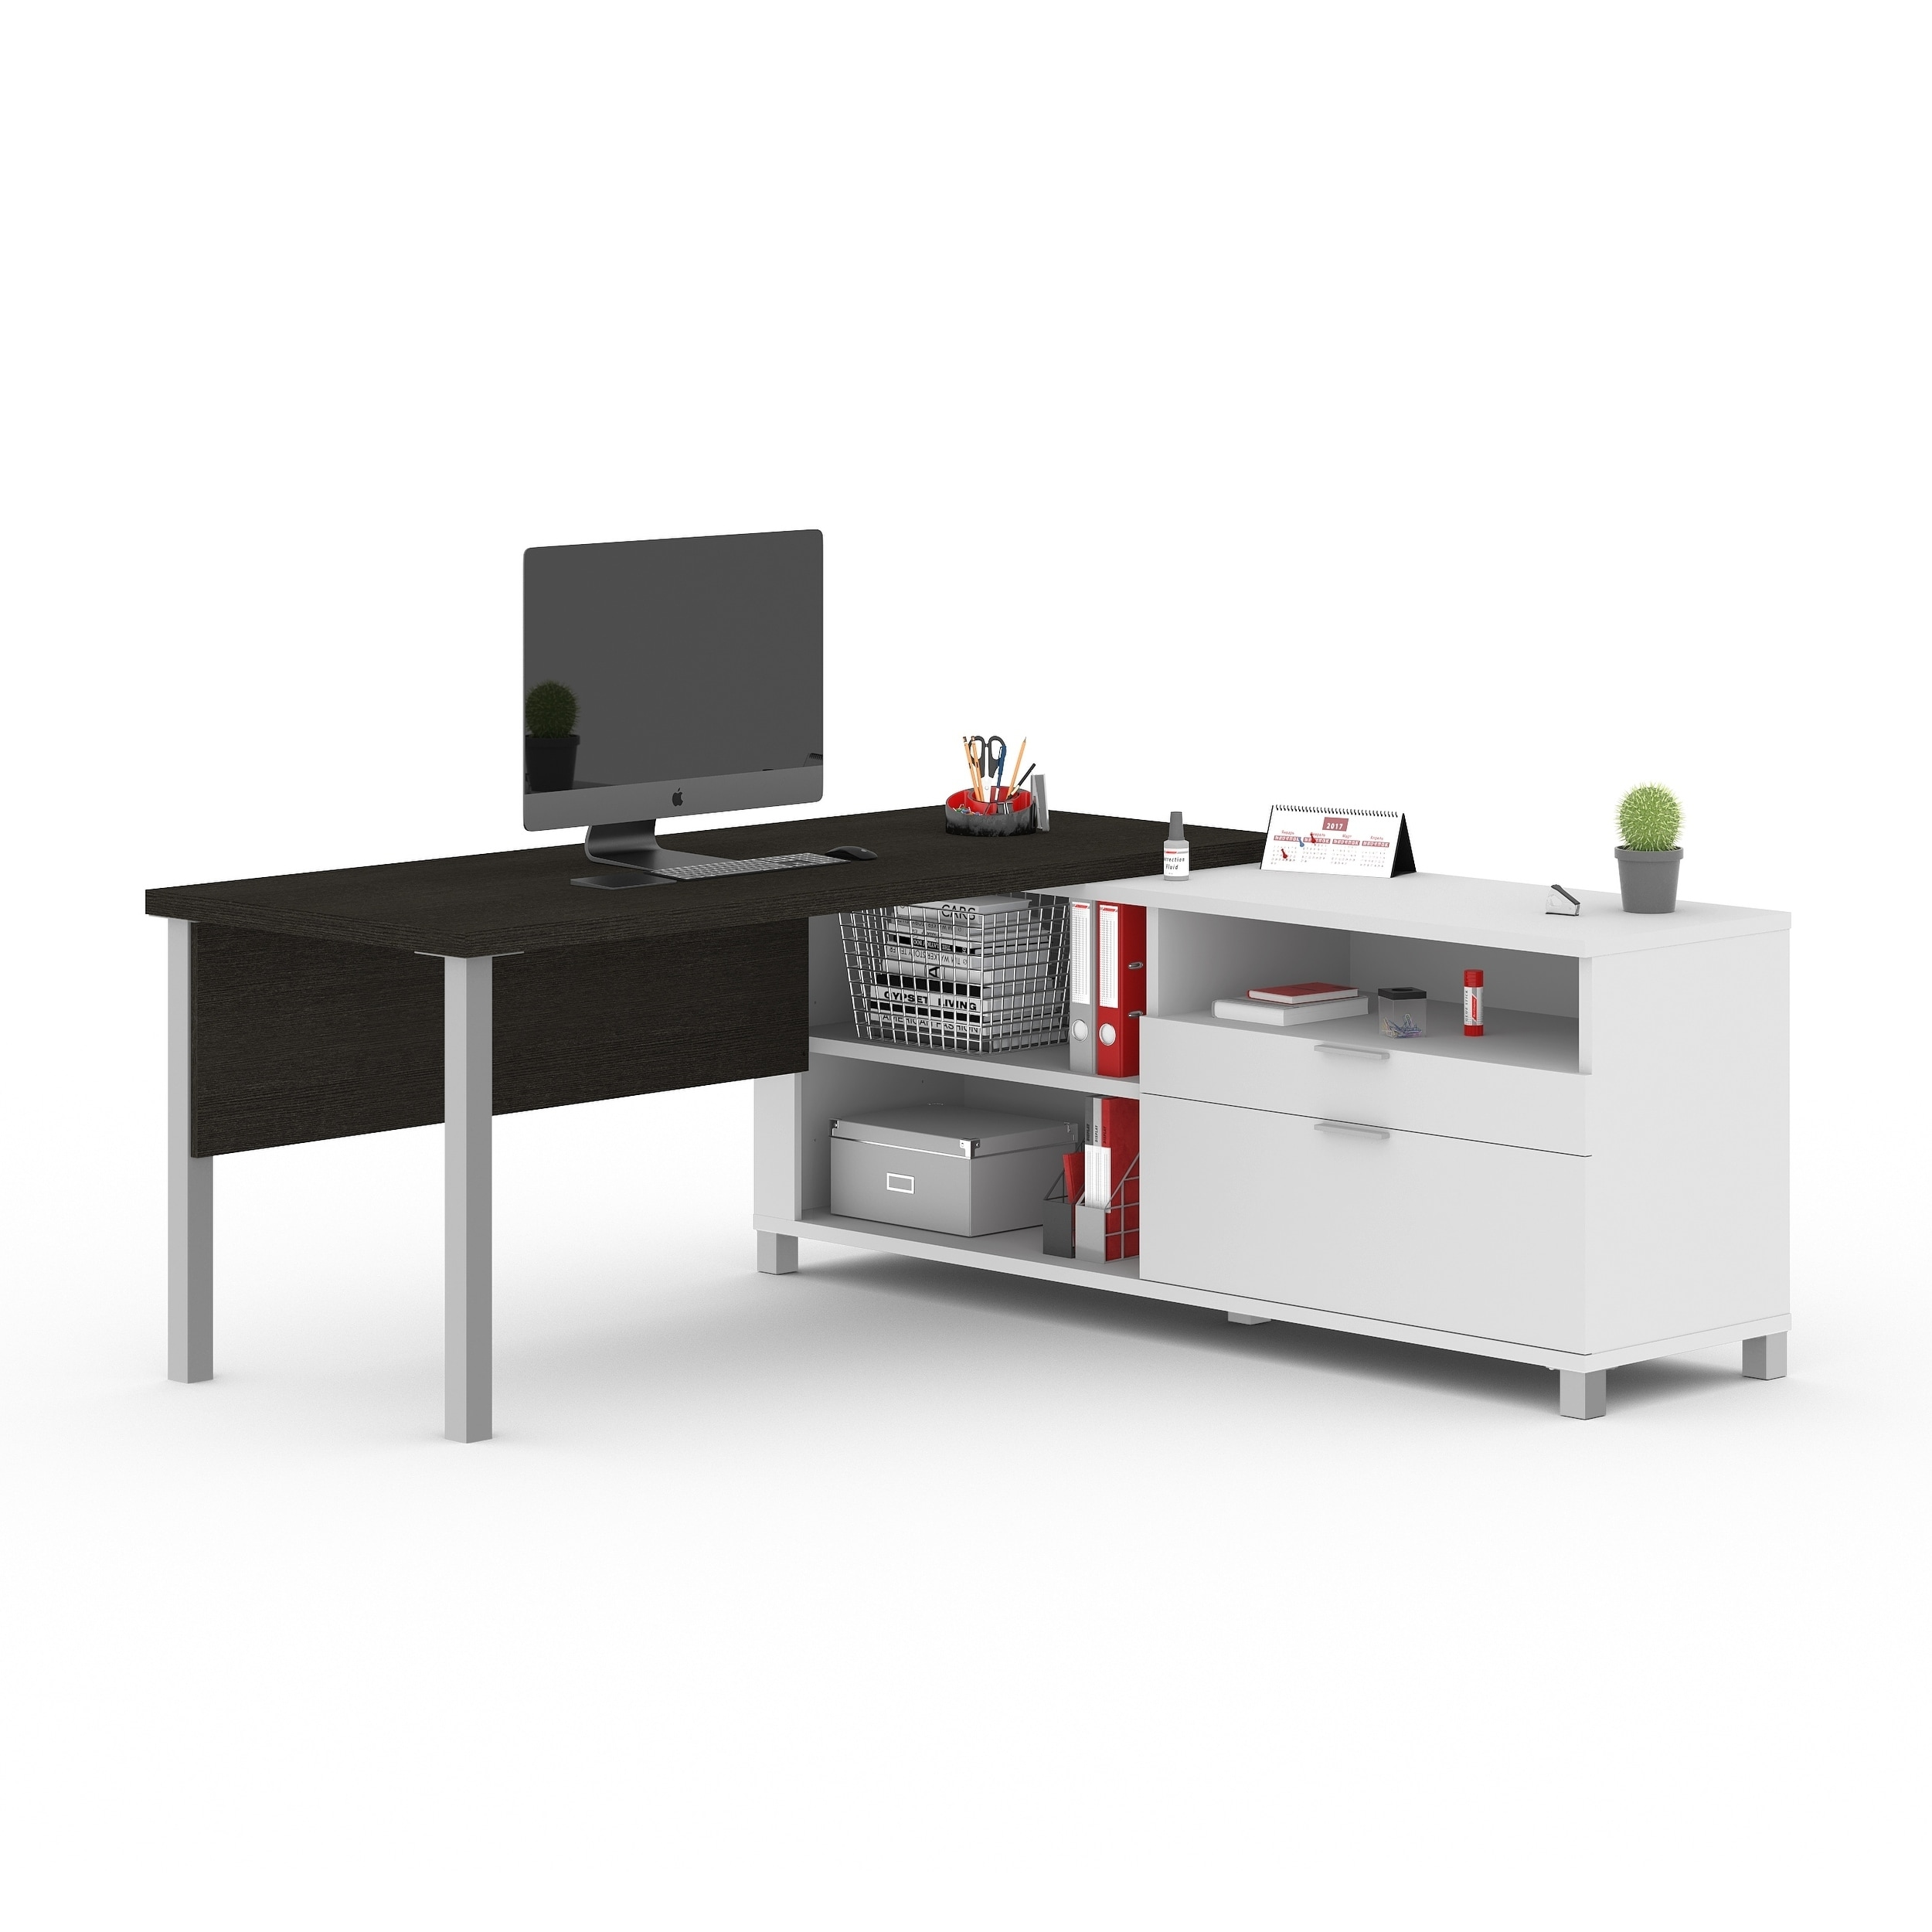 White Bestar Pro Linea L Desk With Hutch Office Furniture Accessories Computer Armoires Hutches